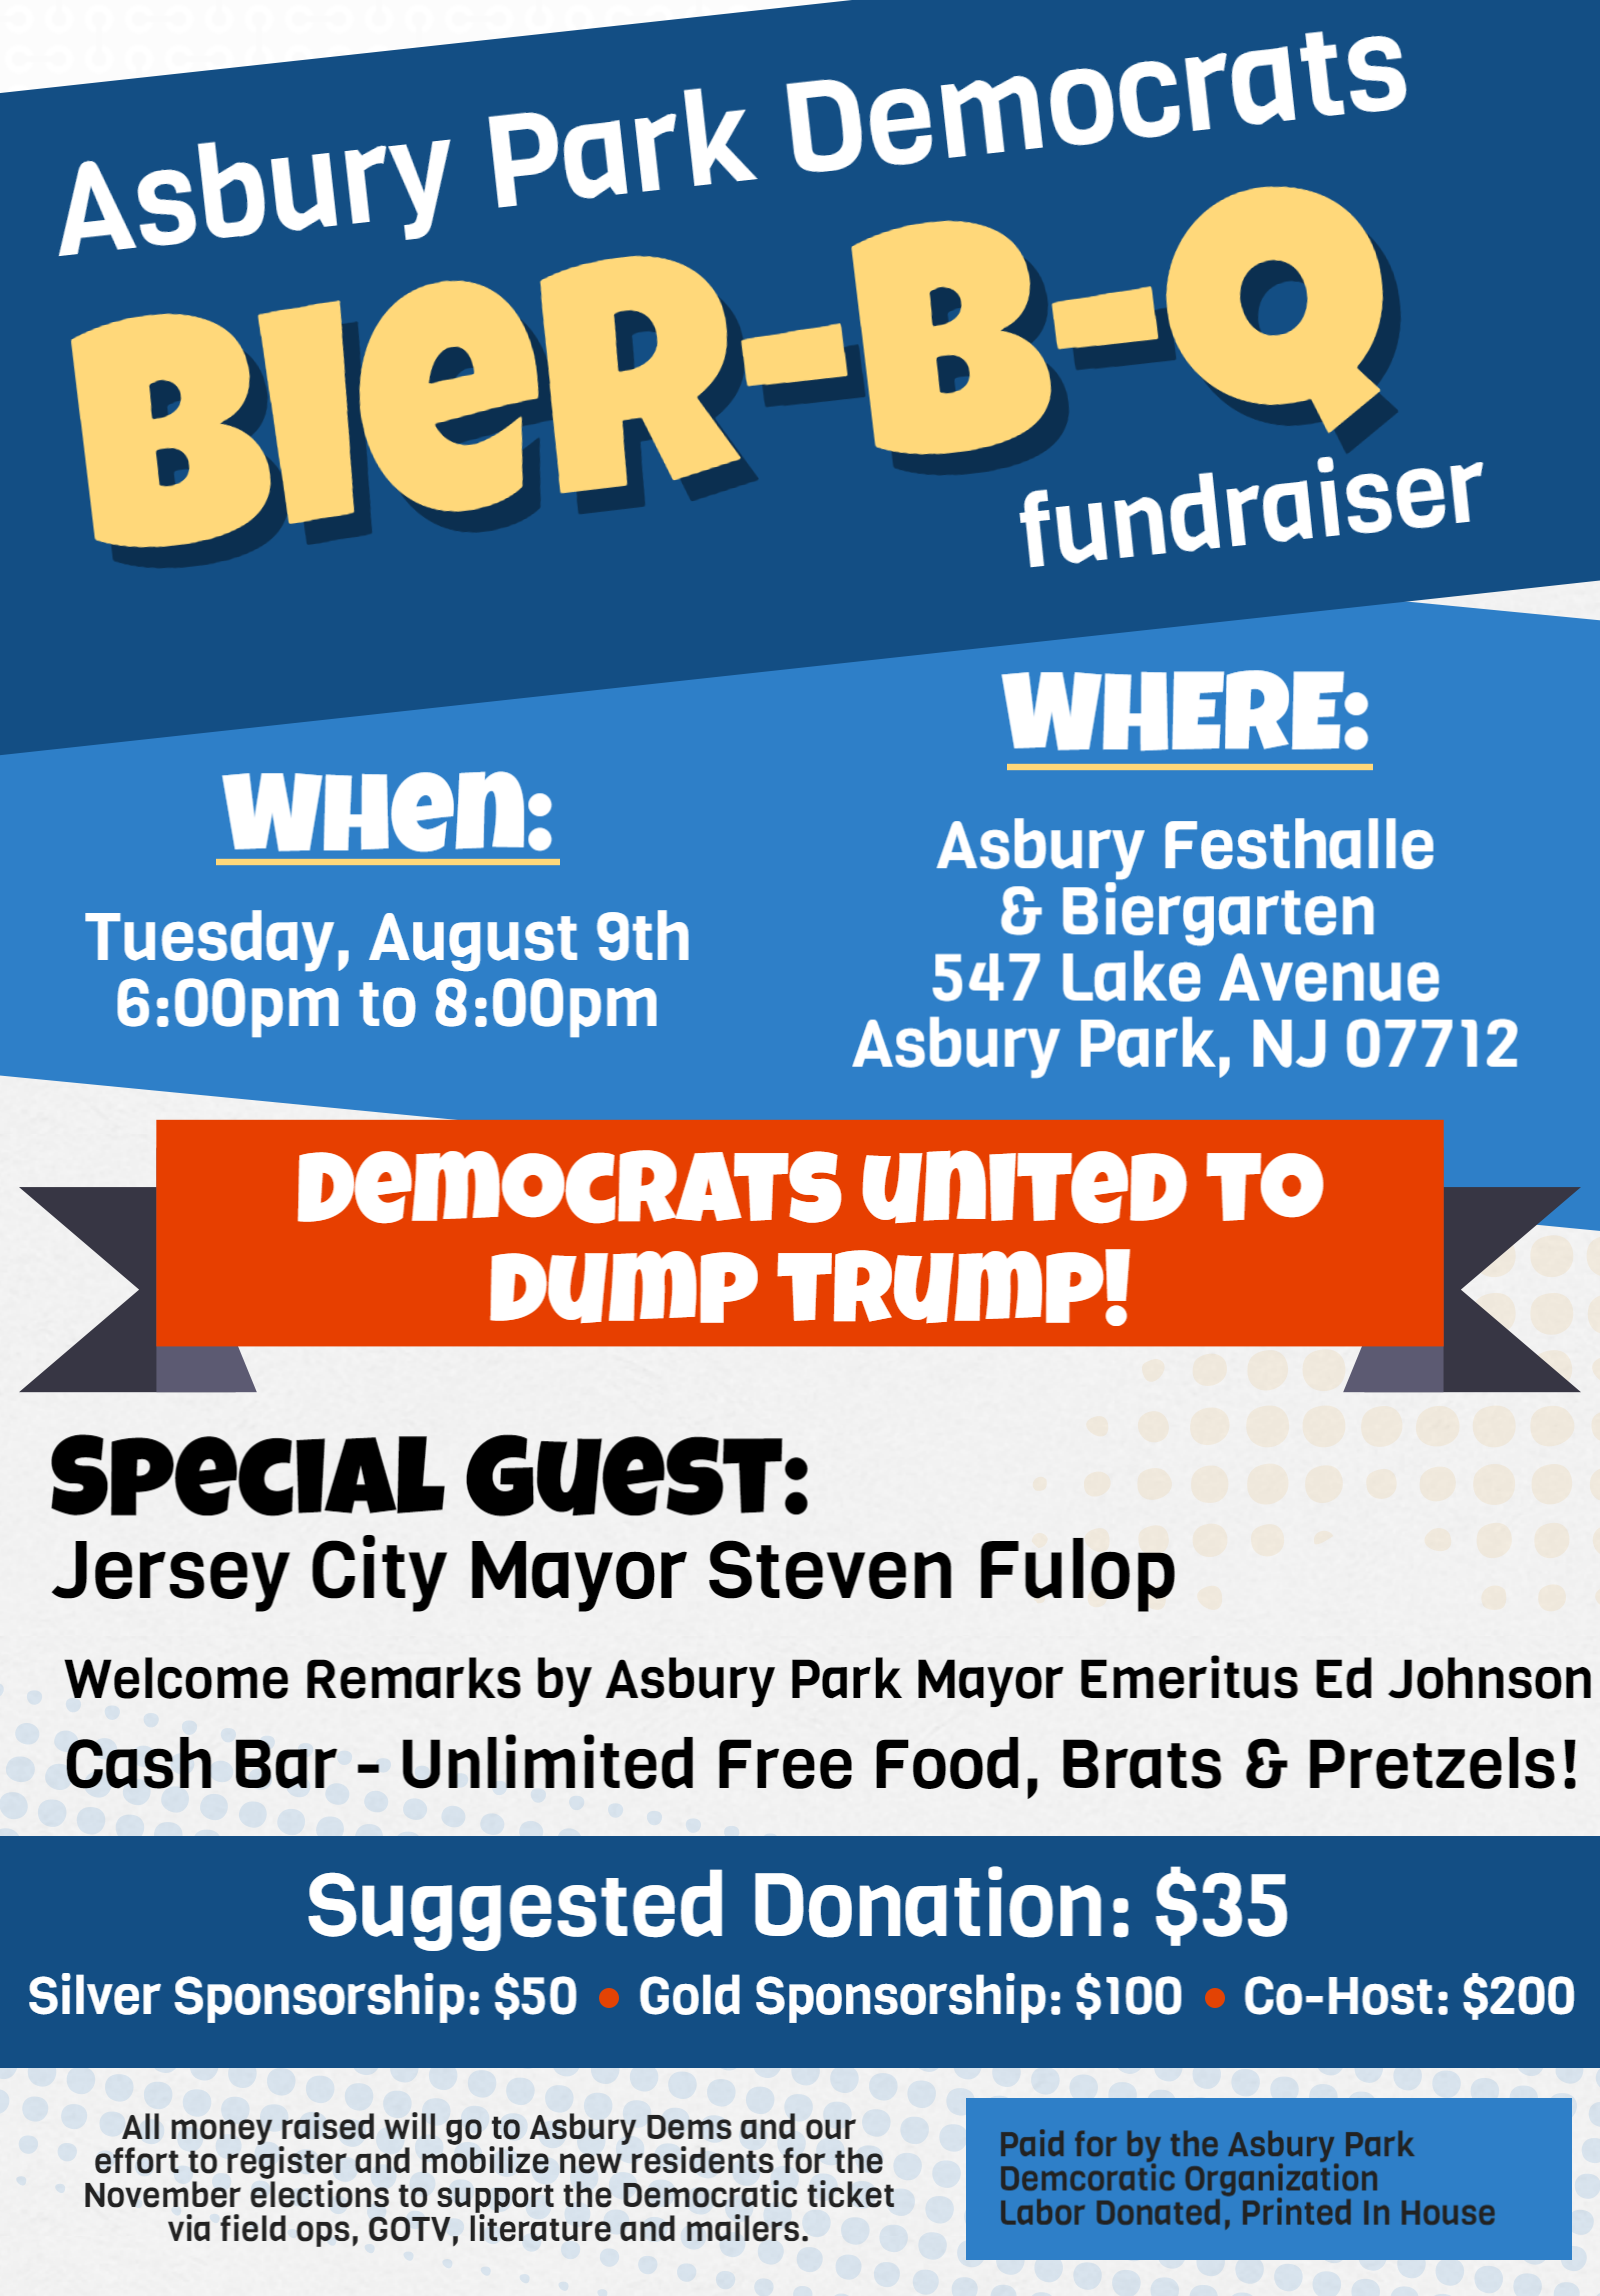 asbury-dems-bbq-fundraiser_(2).png